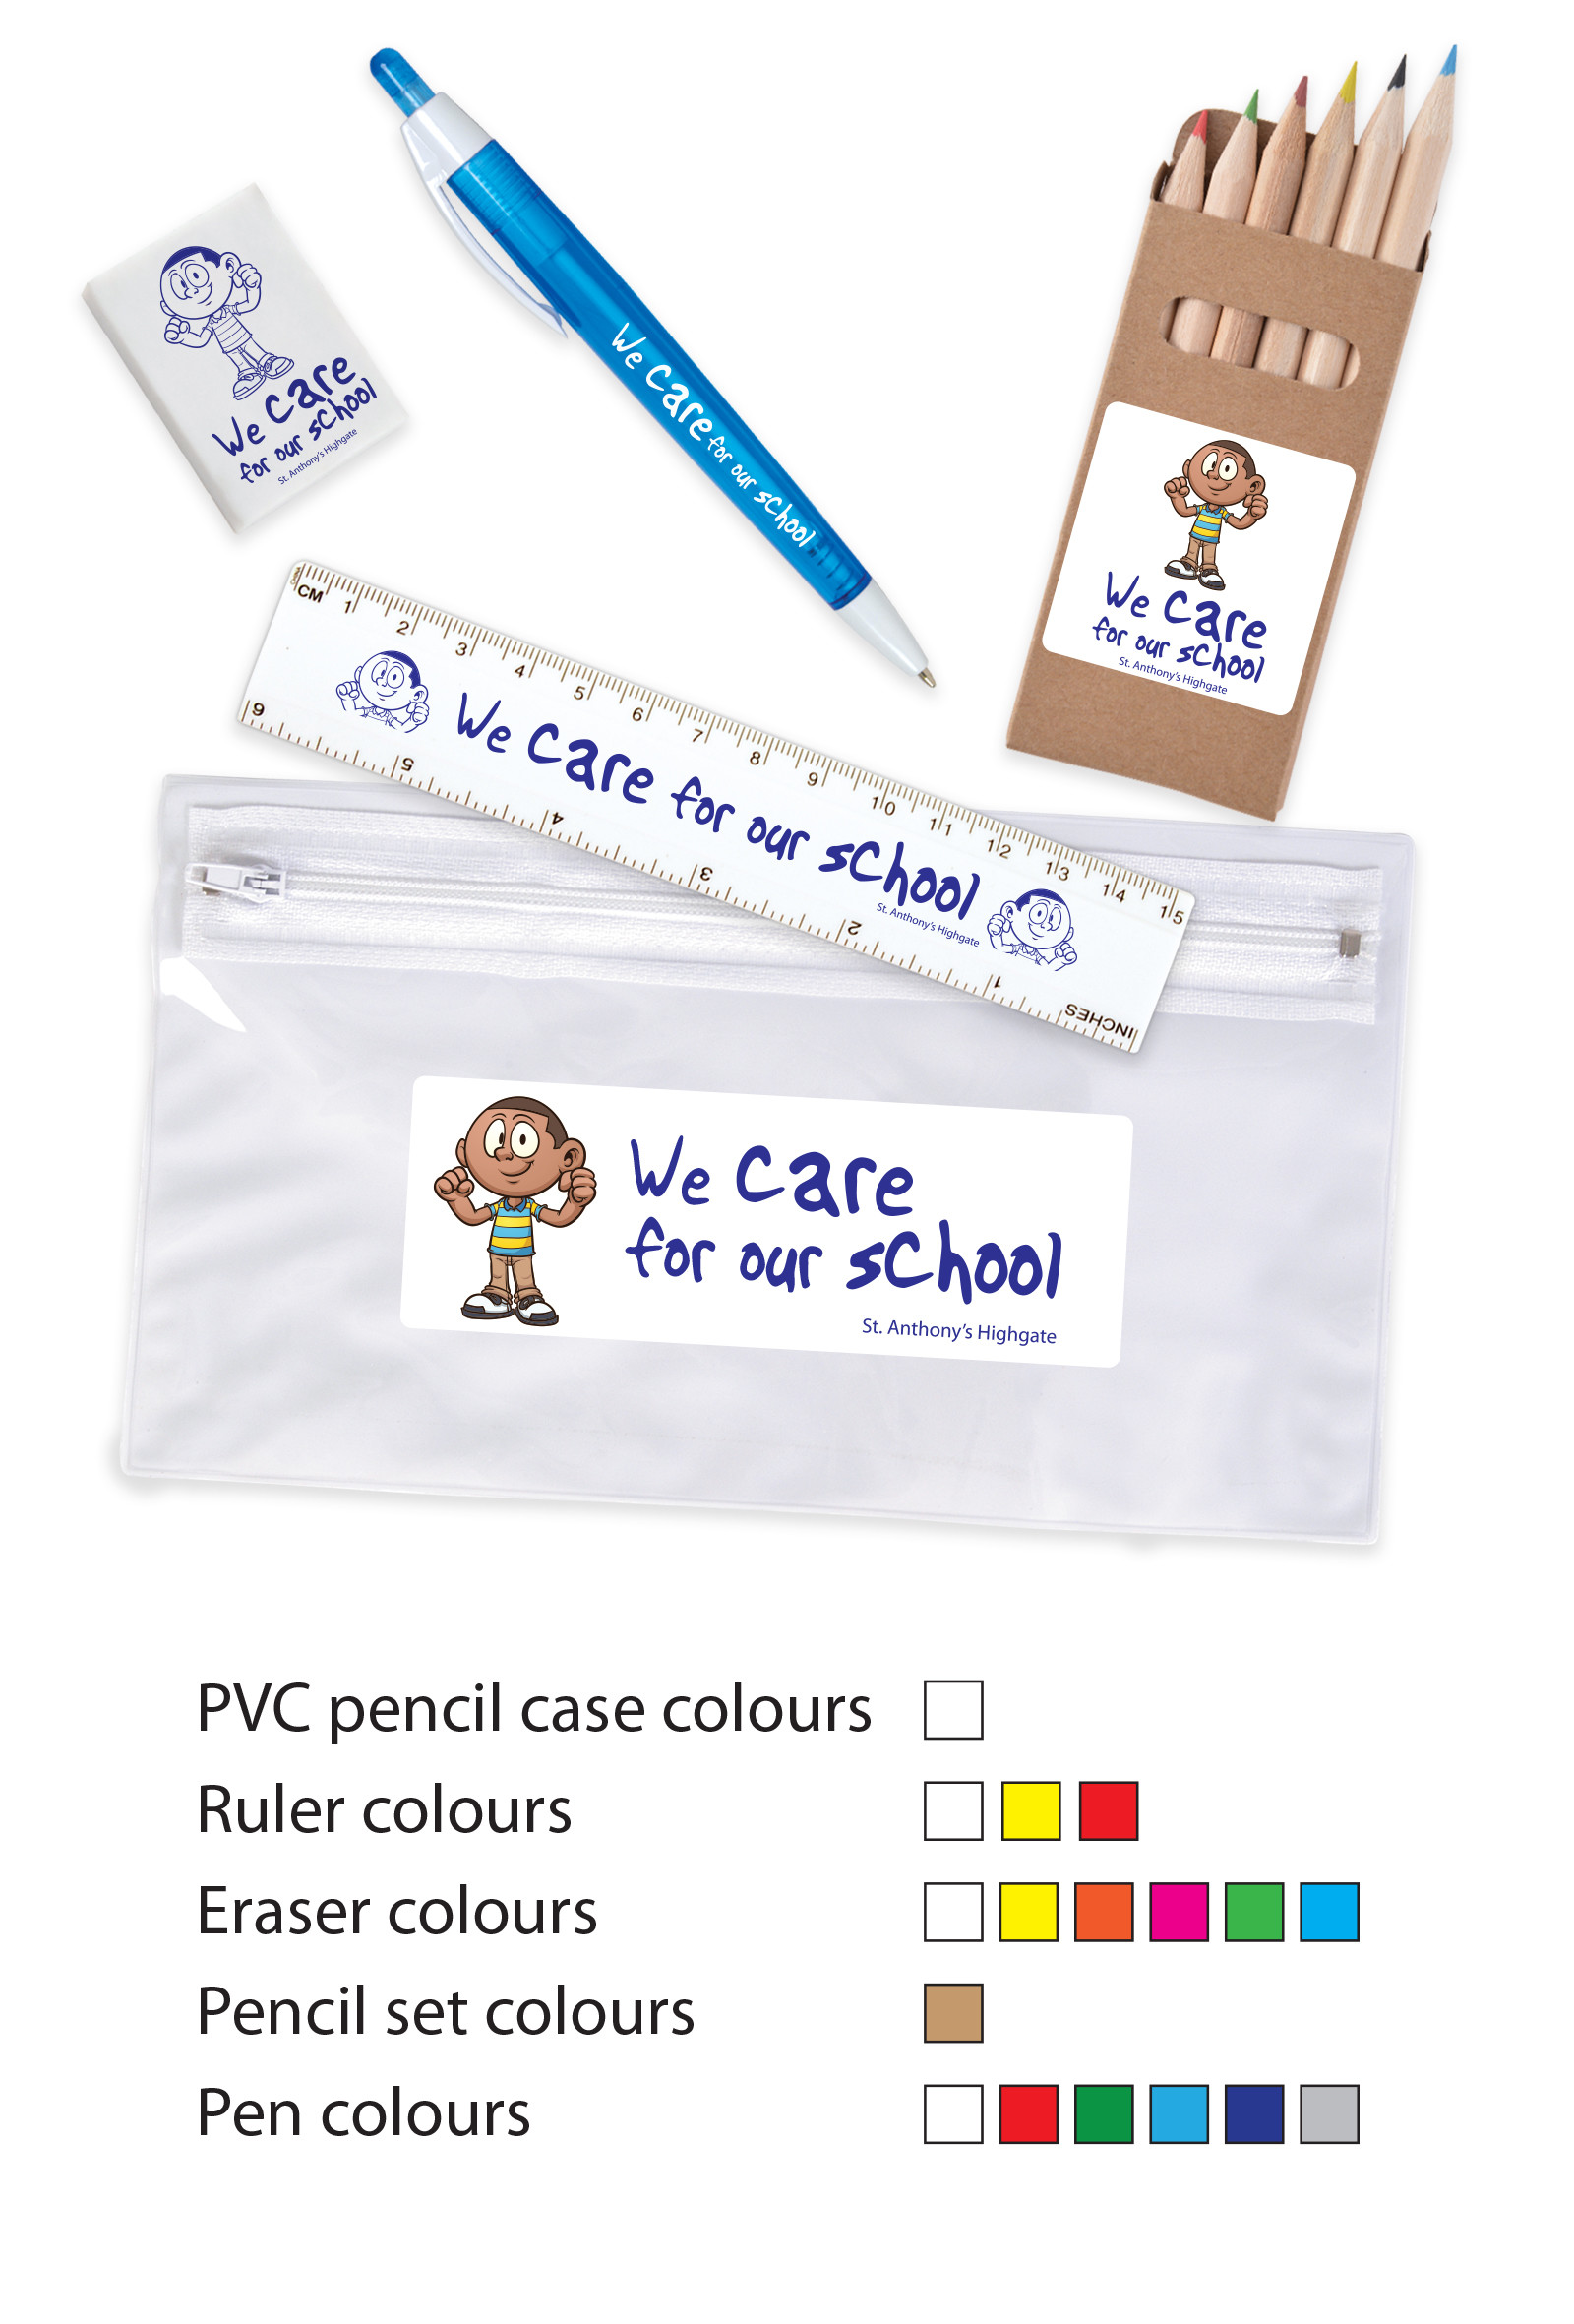 Promotional Product Stationery Set in PVC Pencil Case